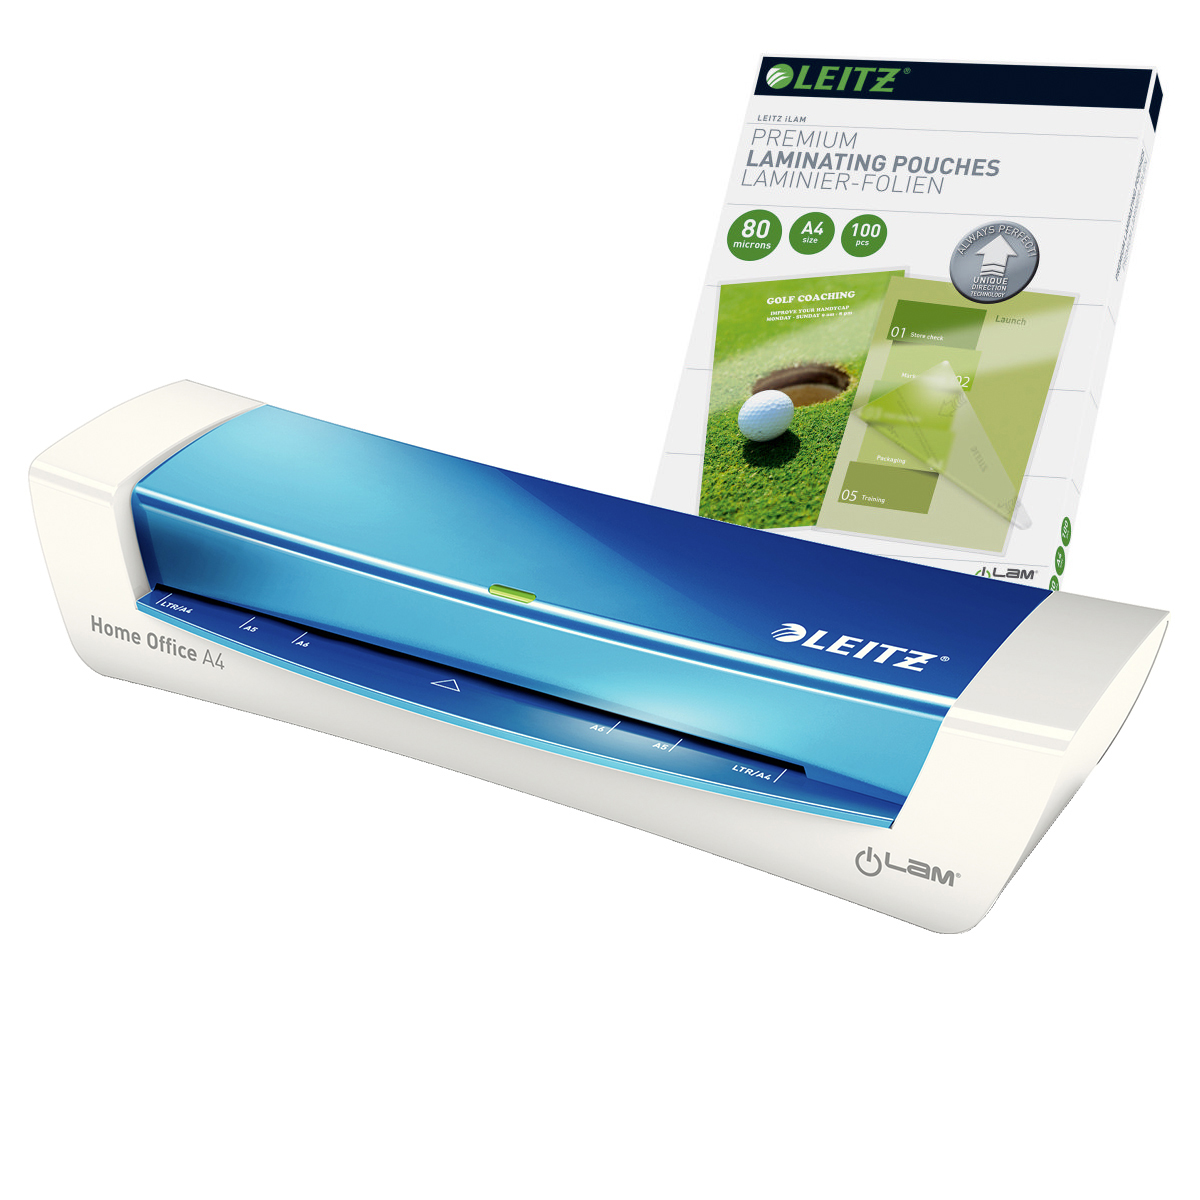 Leitz iLAM Home Office A4 Blue Laminator and Pouches Bundle